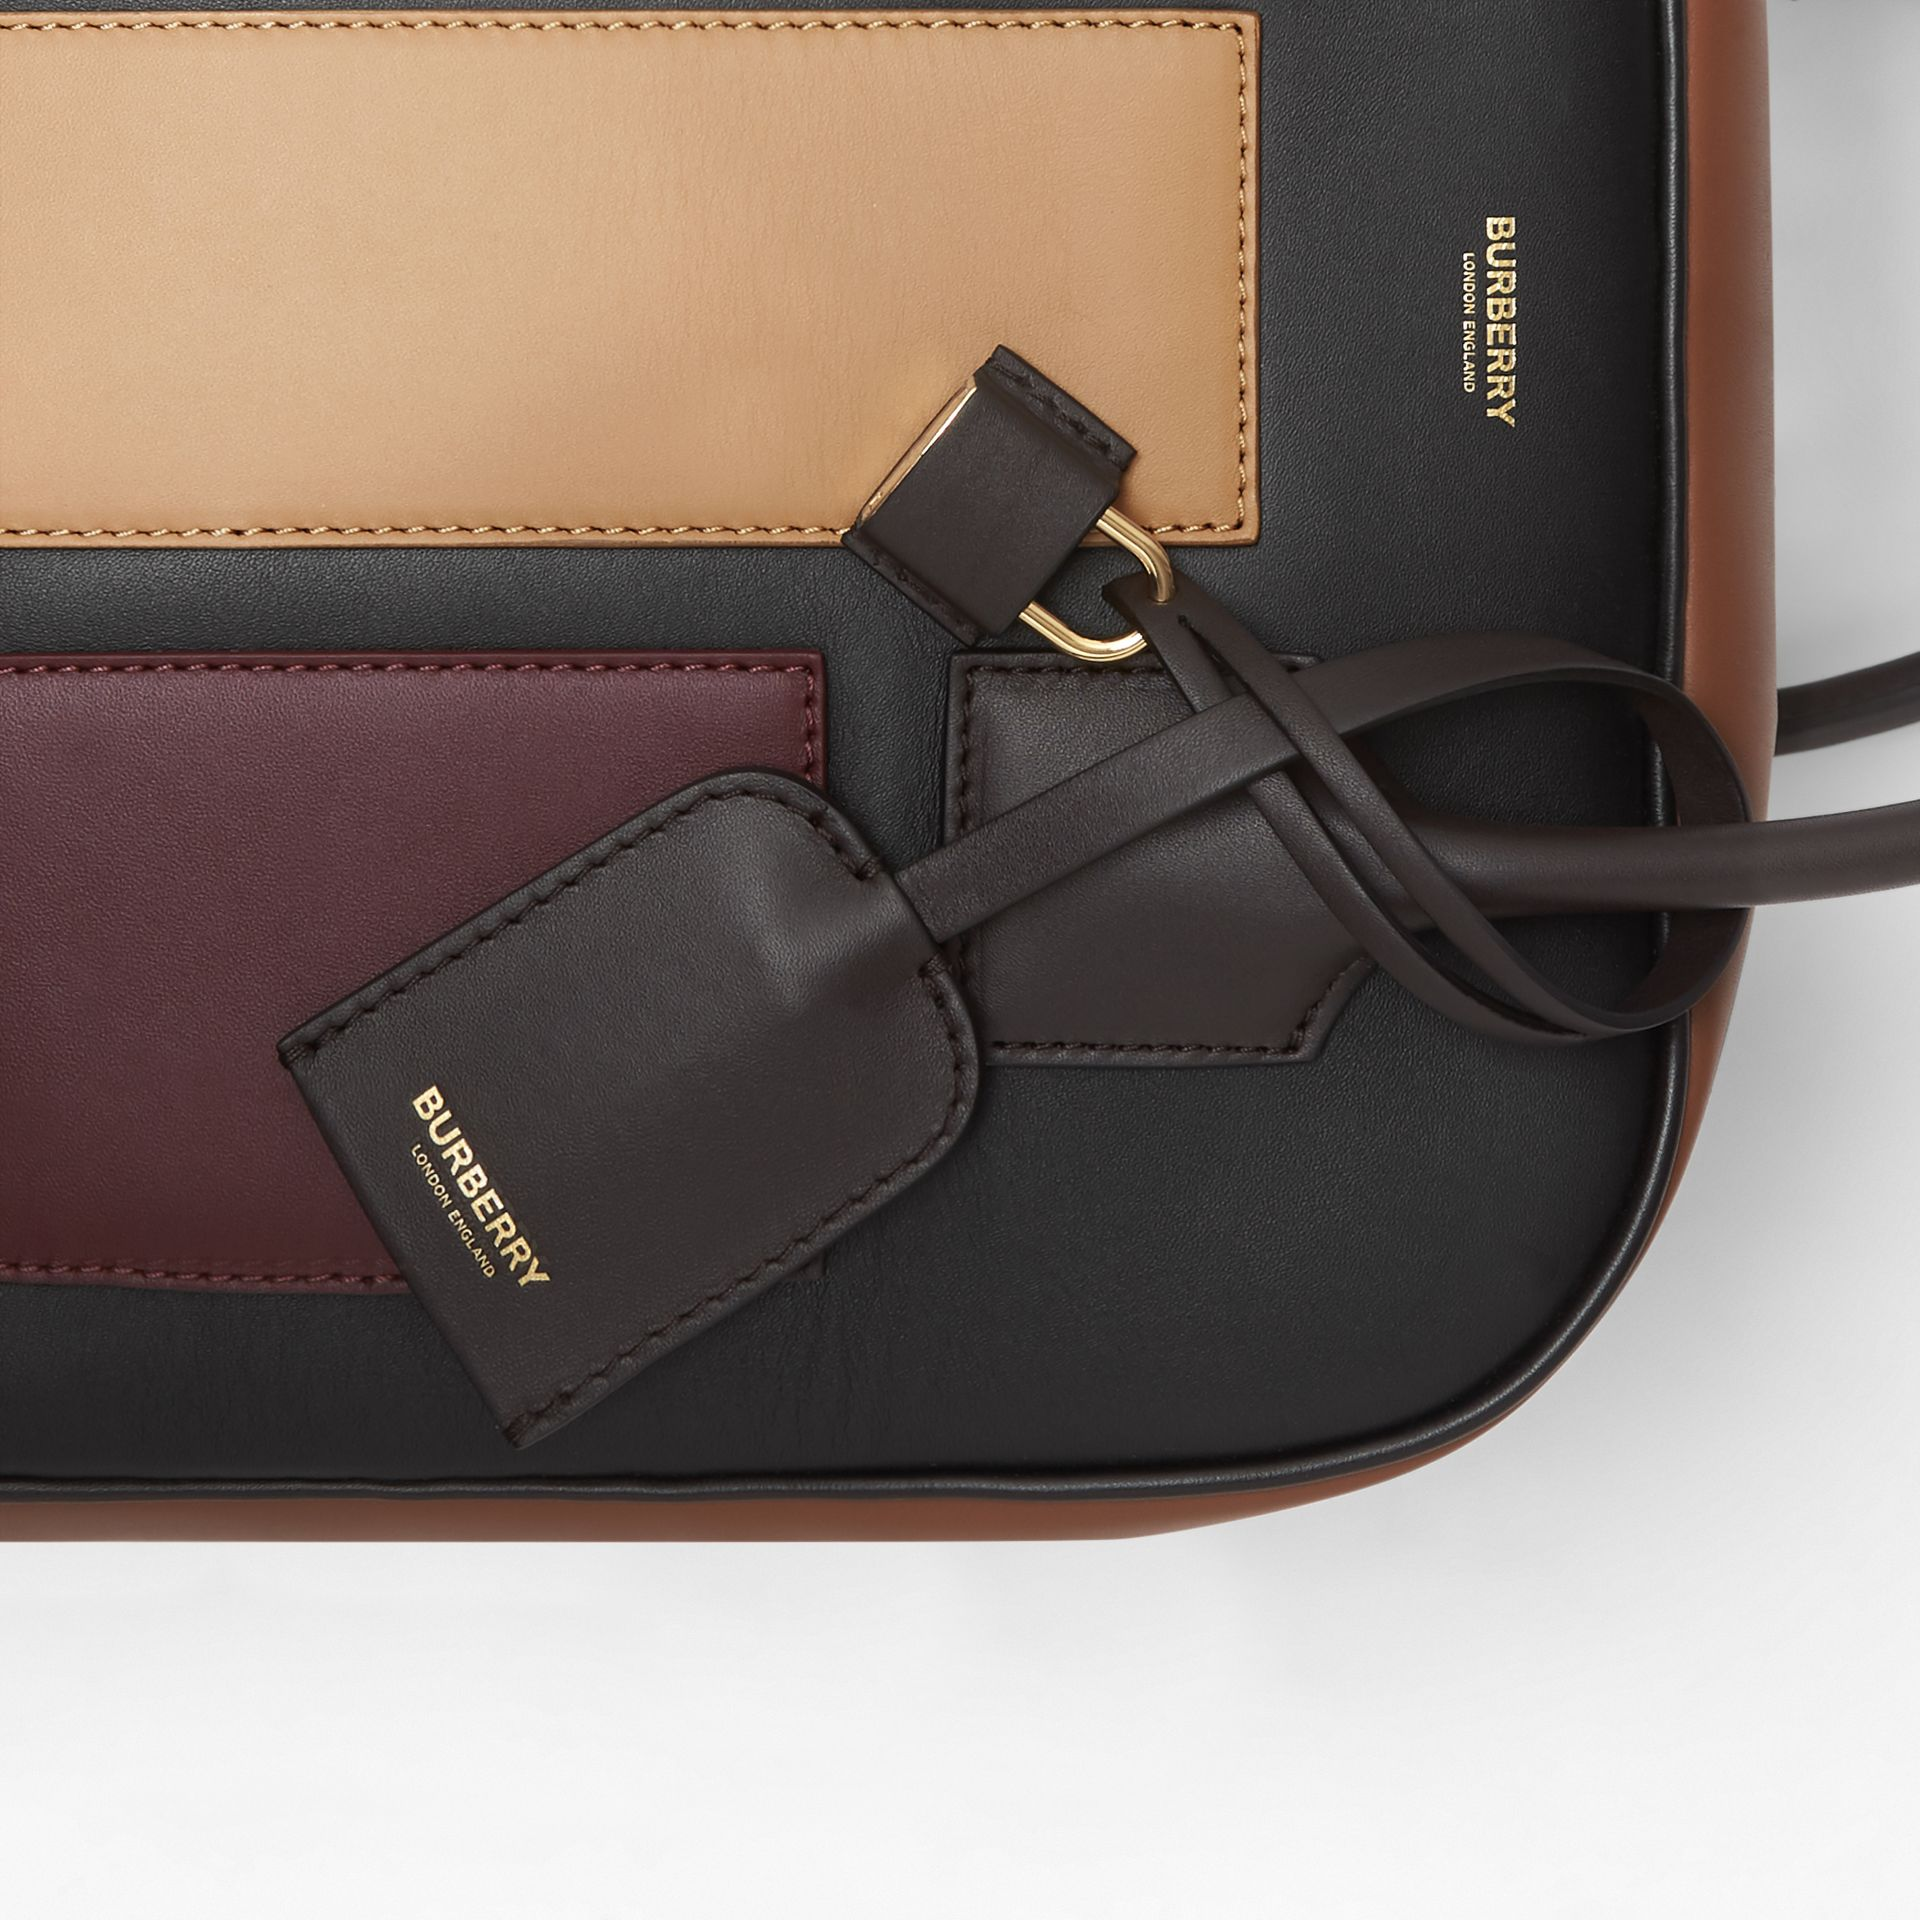 Medium Panelled Leather Cube Bag in Black - Women | Burberry United Kingdom - gallery image 8